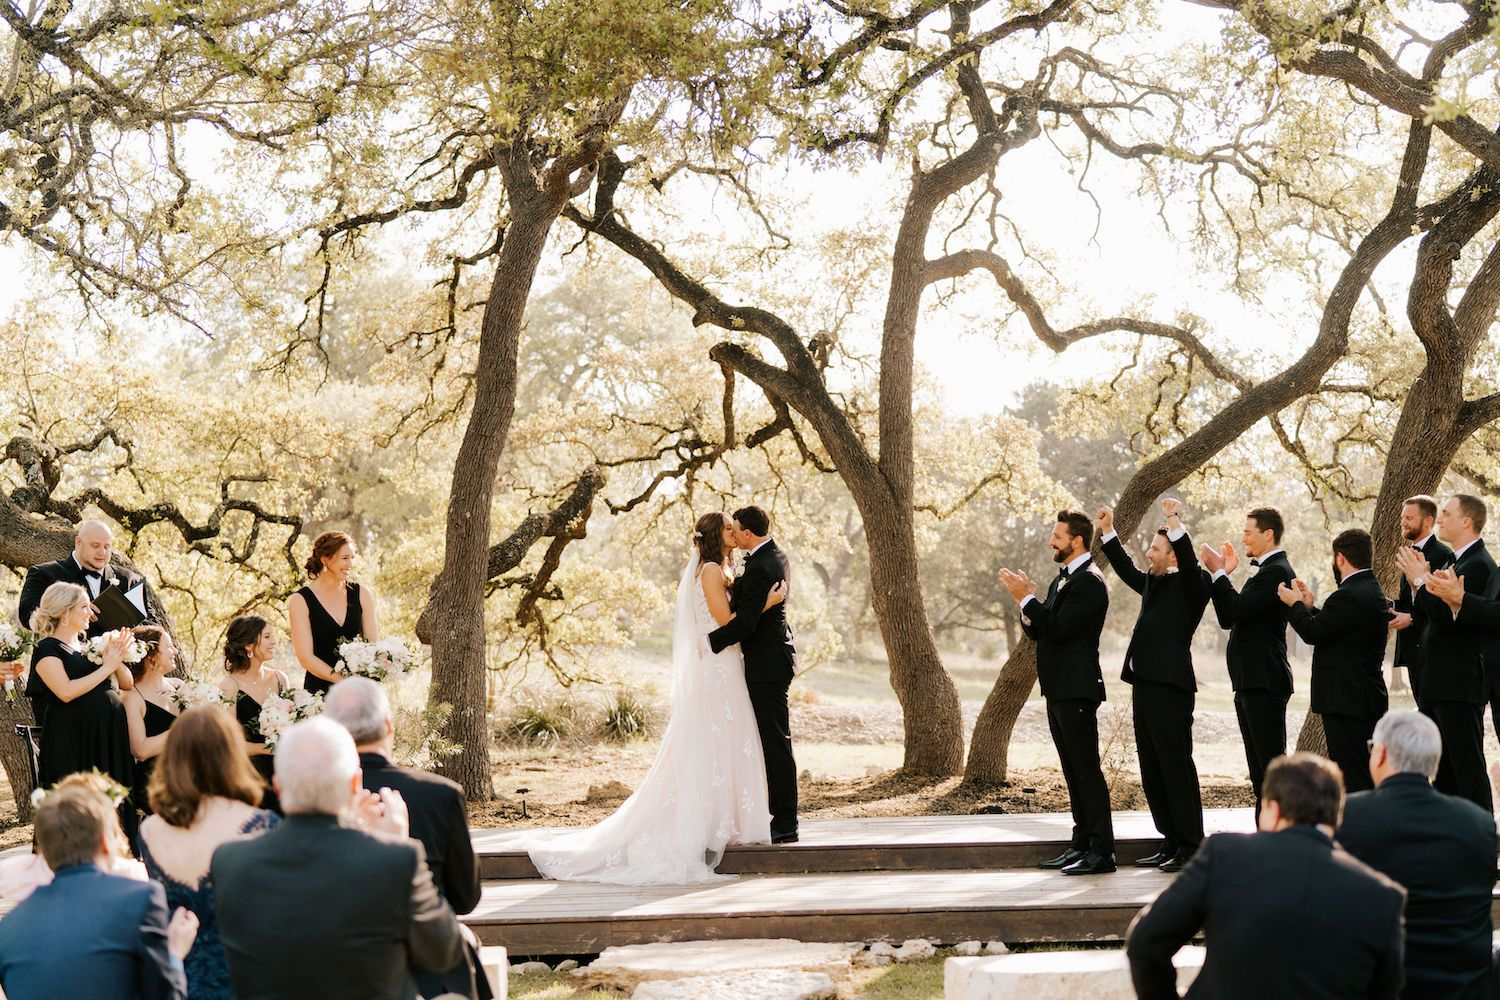 A newlywed couple exchanges a kiss under a natural arch of trees in Texas hill country.